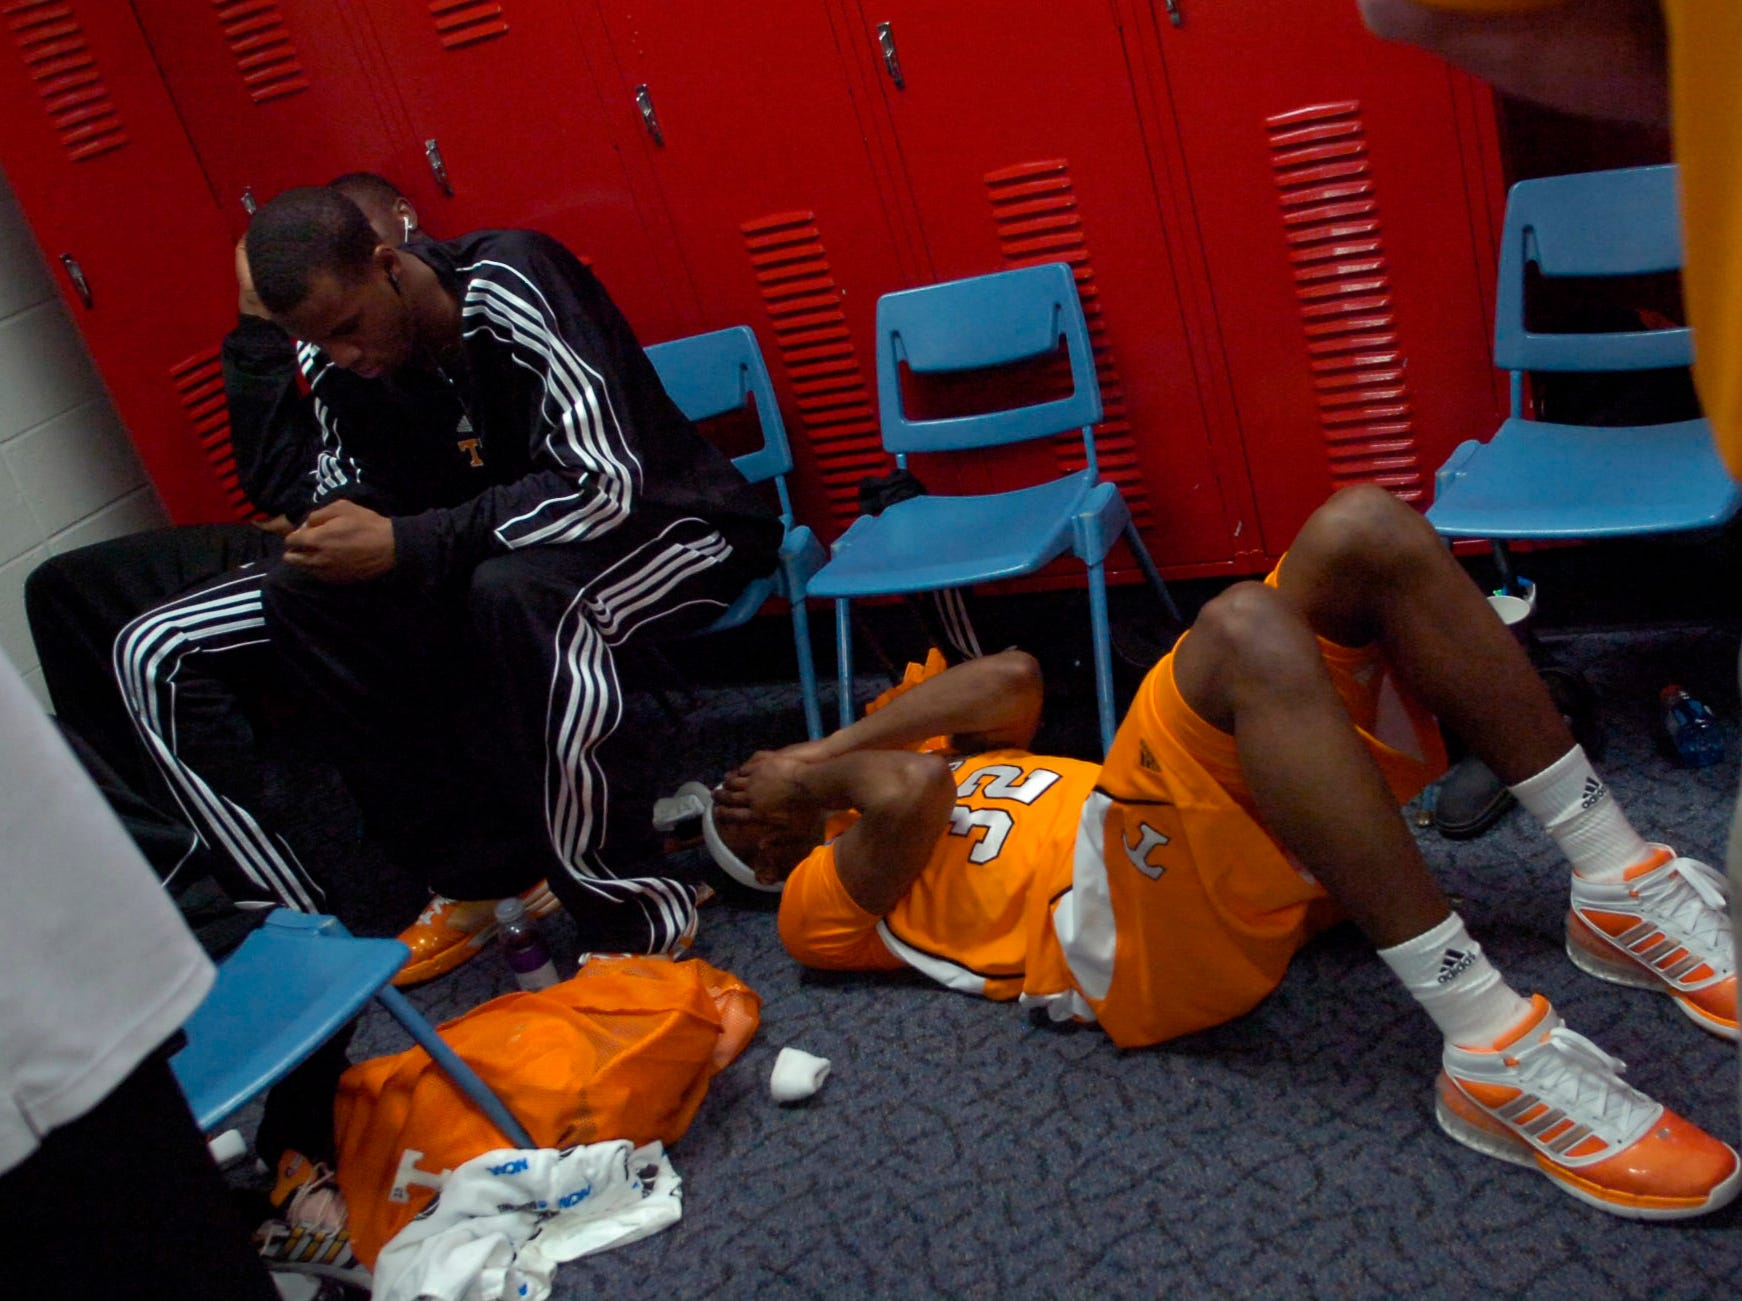 Tennessee's Scotty Hopson lies on the floor in the locker room beside teammate Renaldo Woolridge after the 77-75 loss to  Oklahoma State in the first round of the 2009 NCAA tournament in Dayton, OH on Friday, ending the Volunteers season.